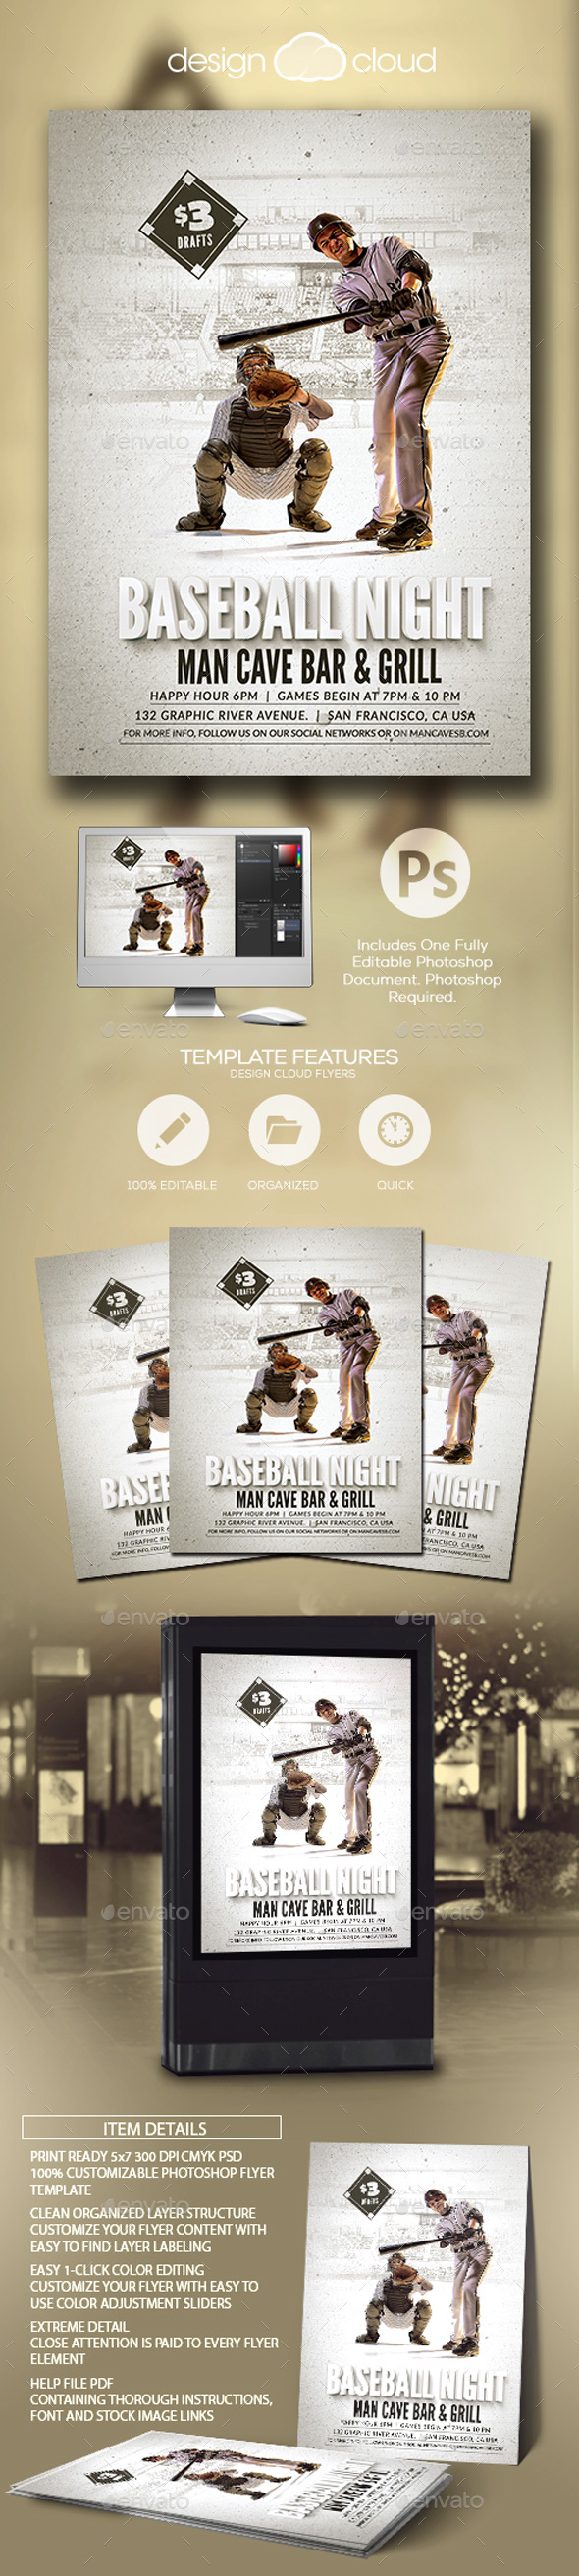 Baseball Nights Event Flyer Template - Sports Events